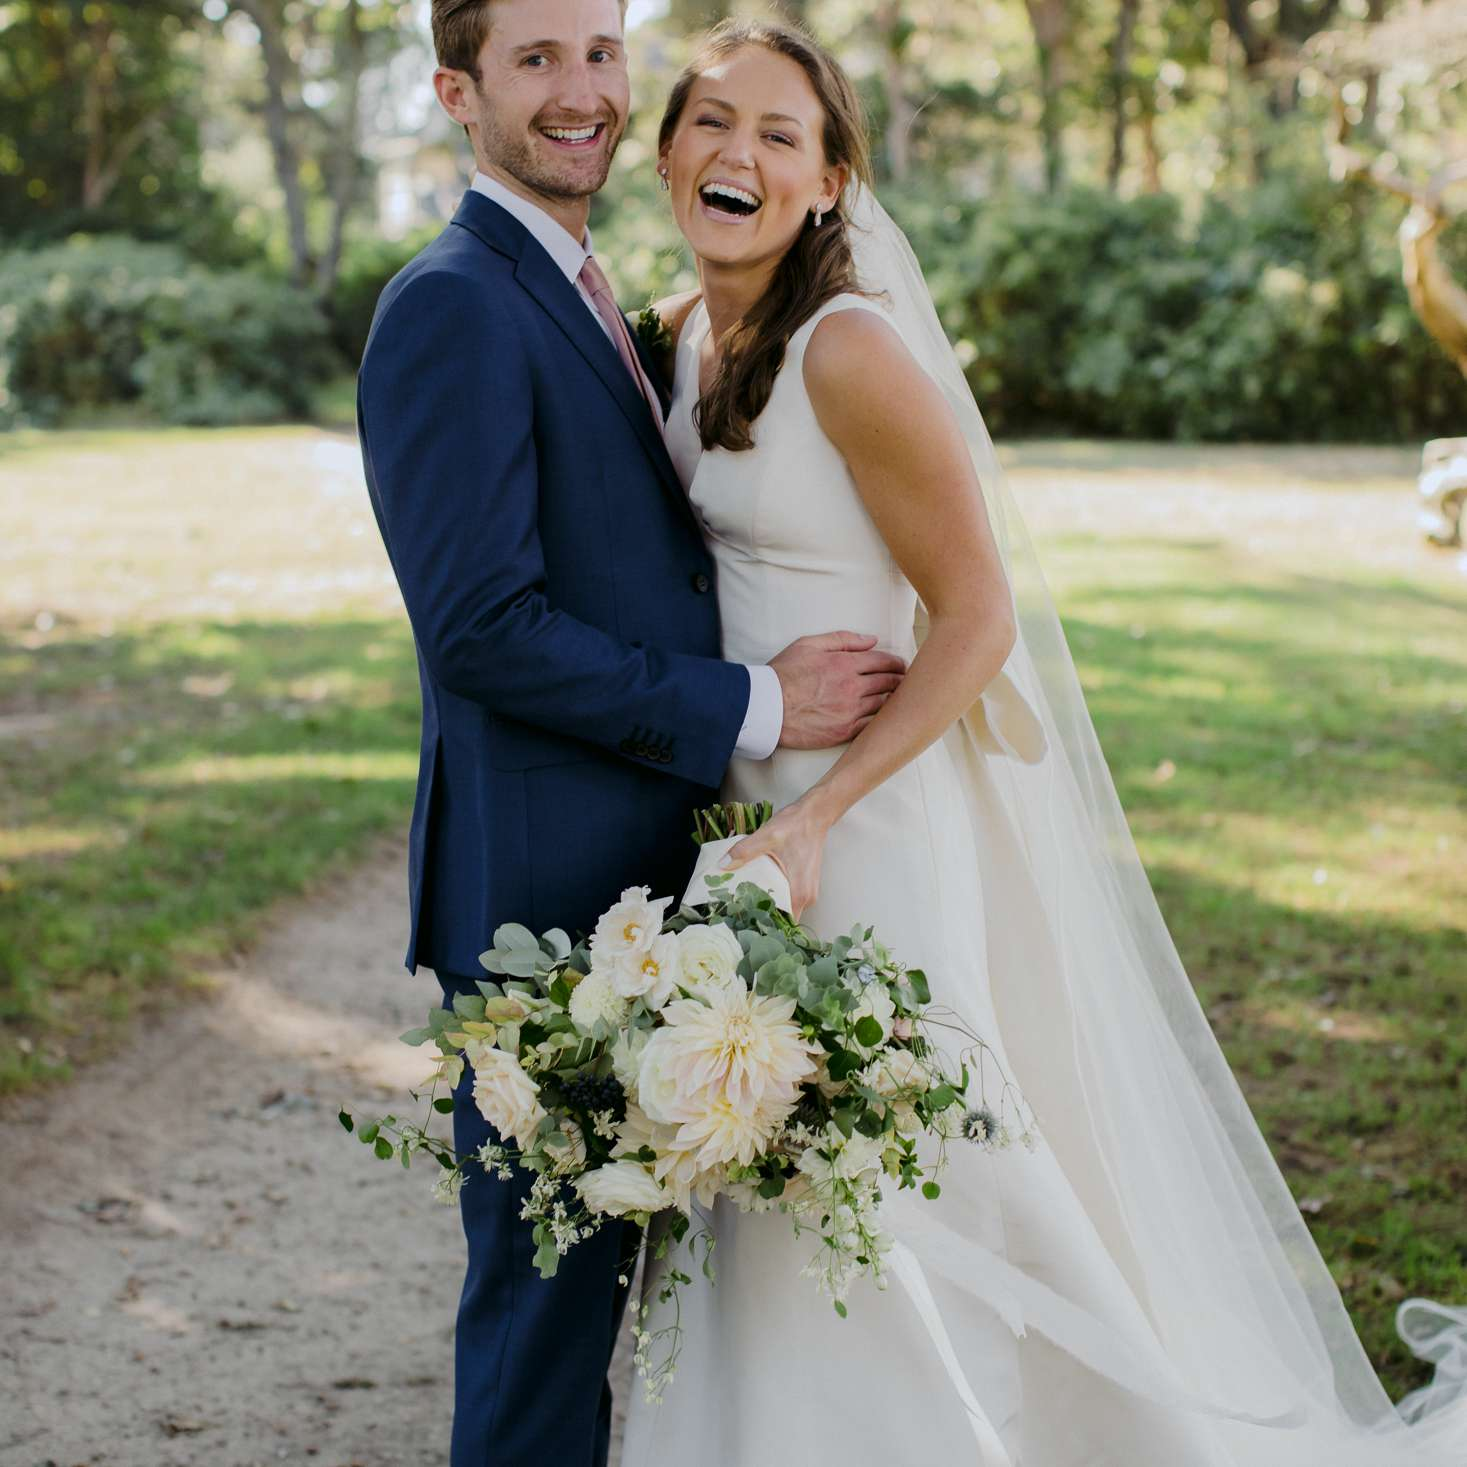 at-home rustic massachusetts wedding, bride and groom laughing